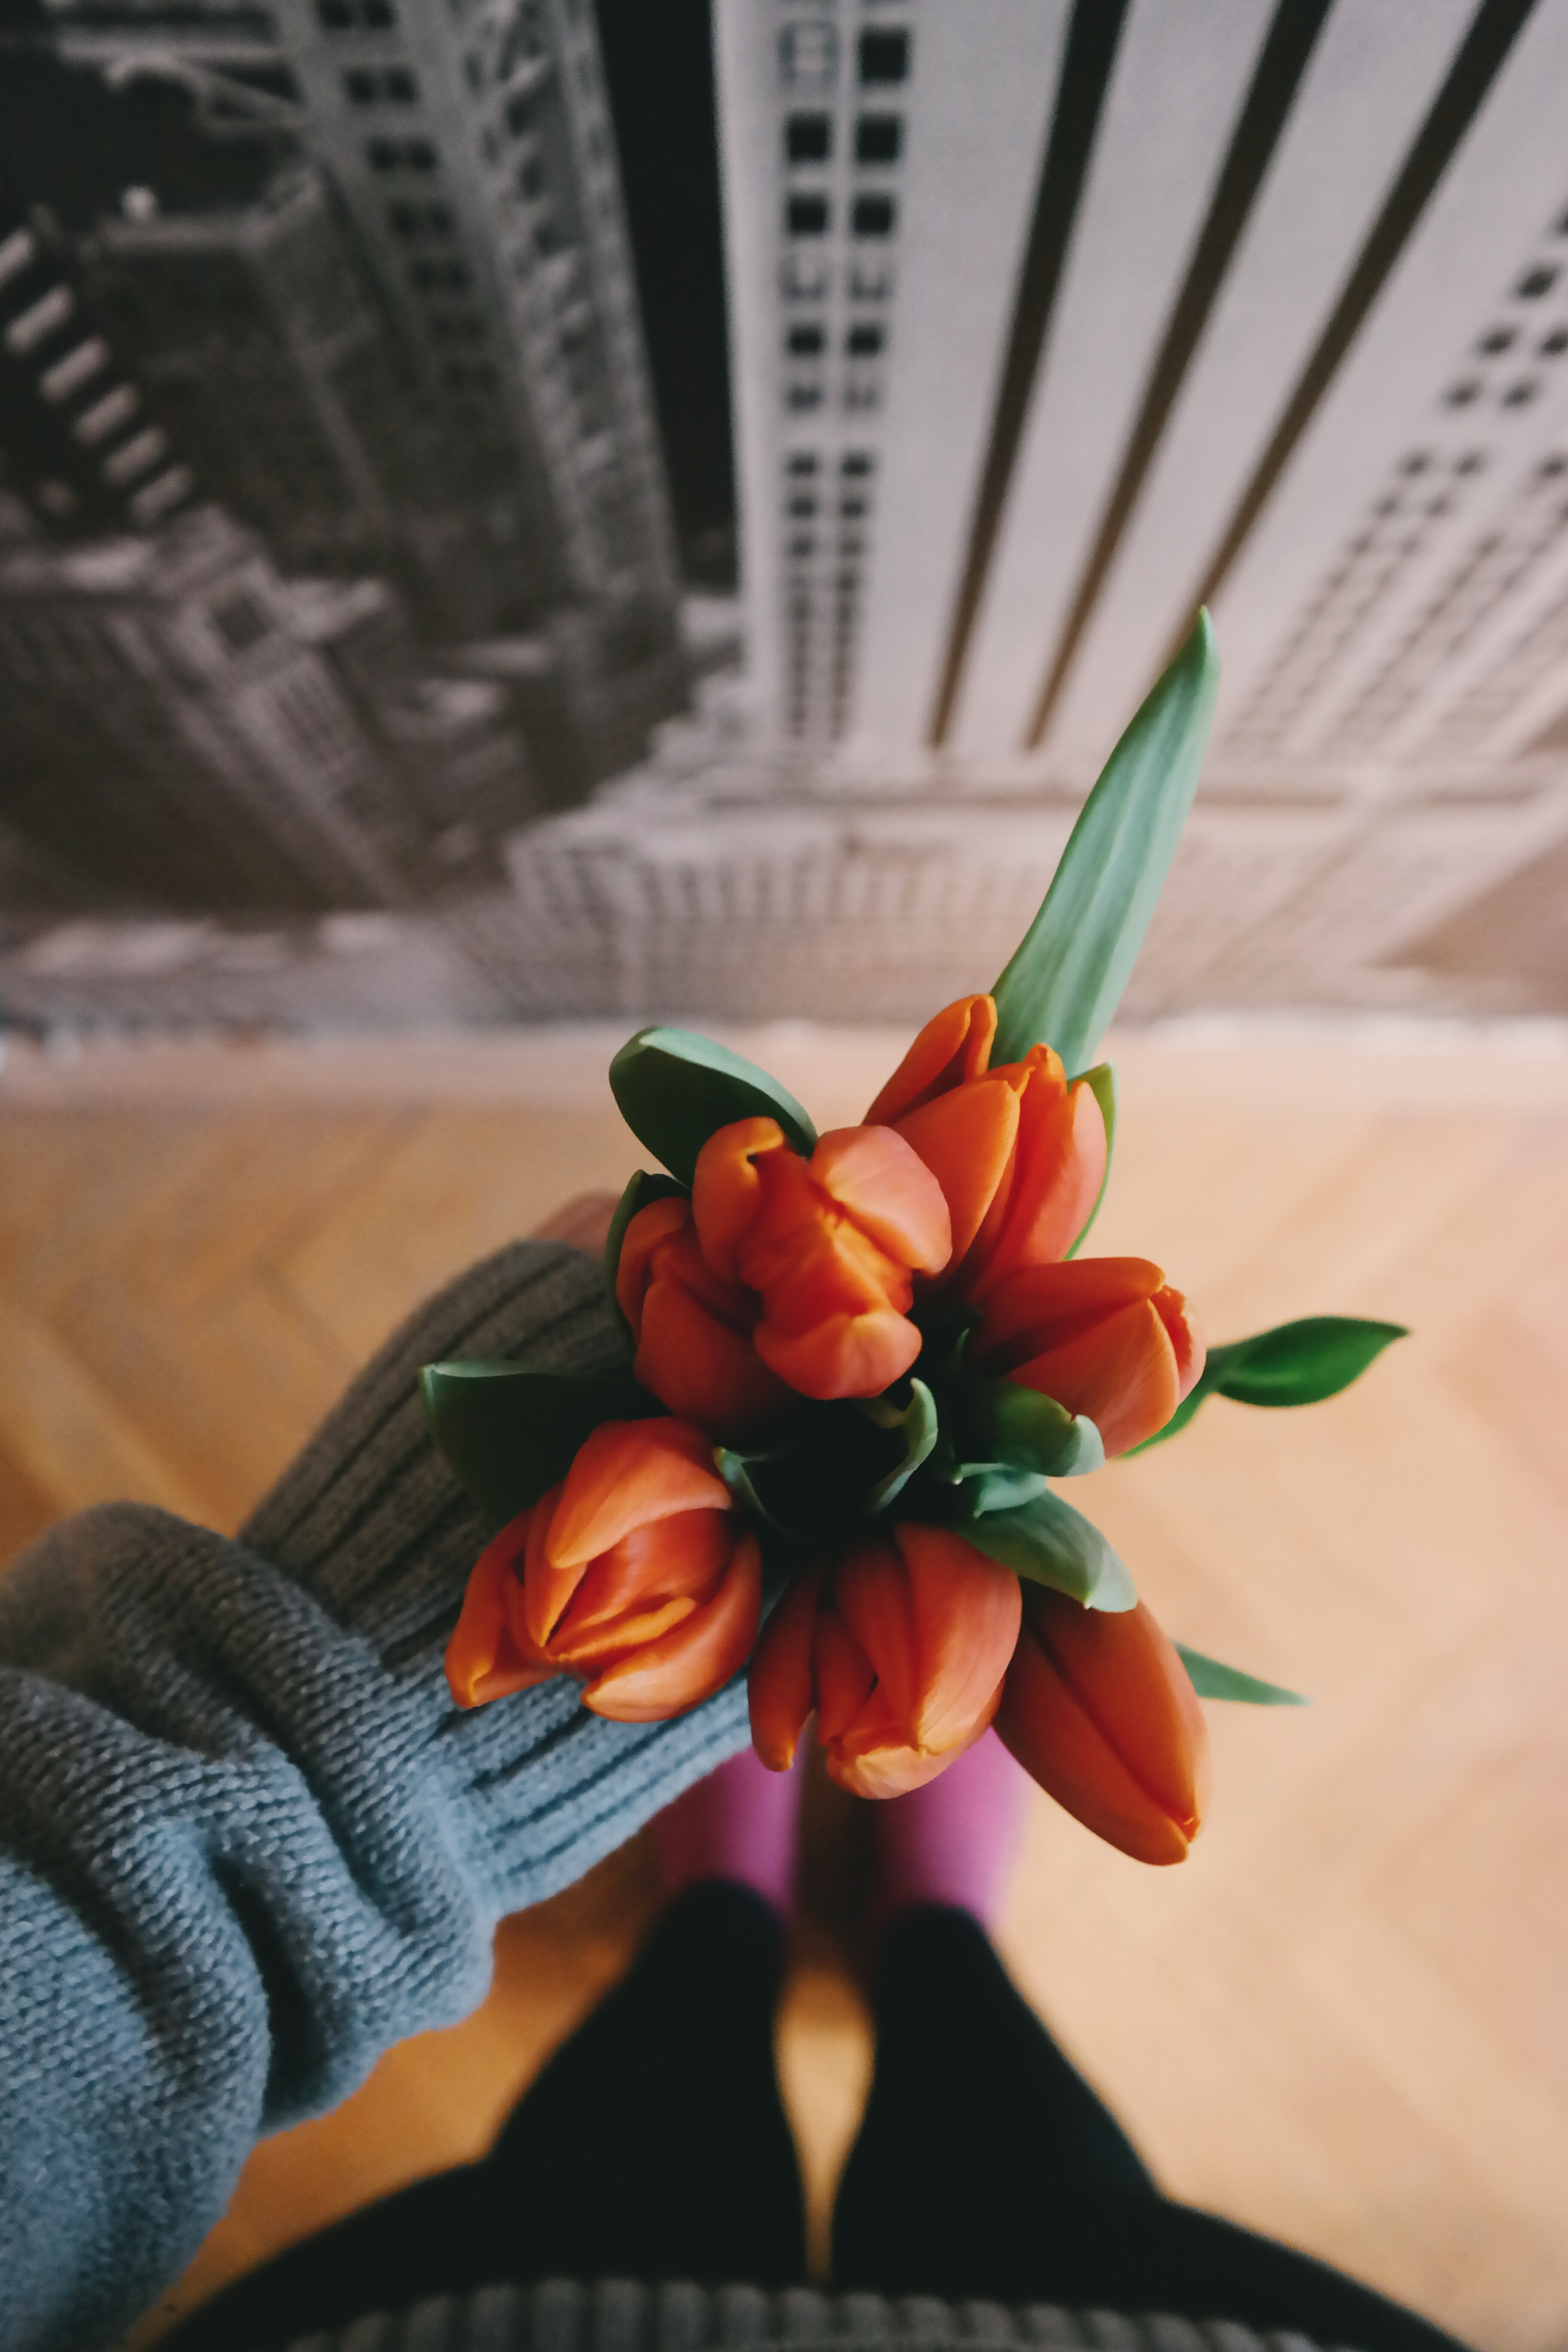 An overhead shot of a person's hand holding a bouquet of orange tulips